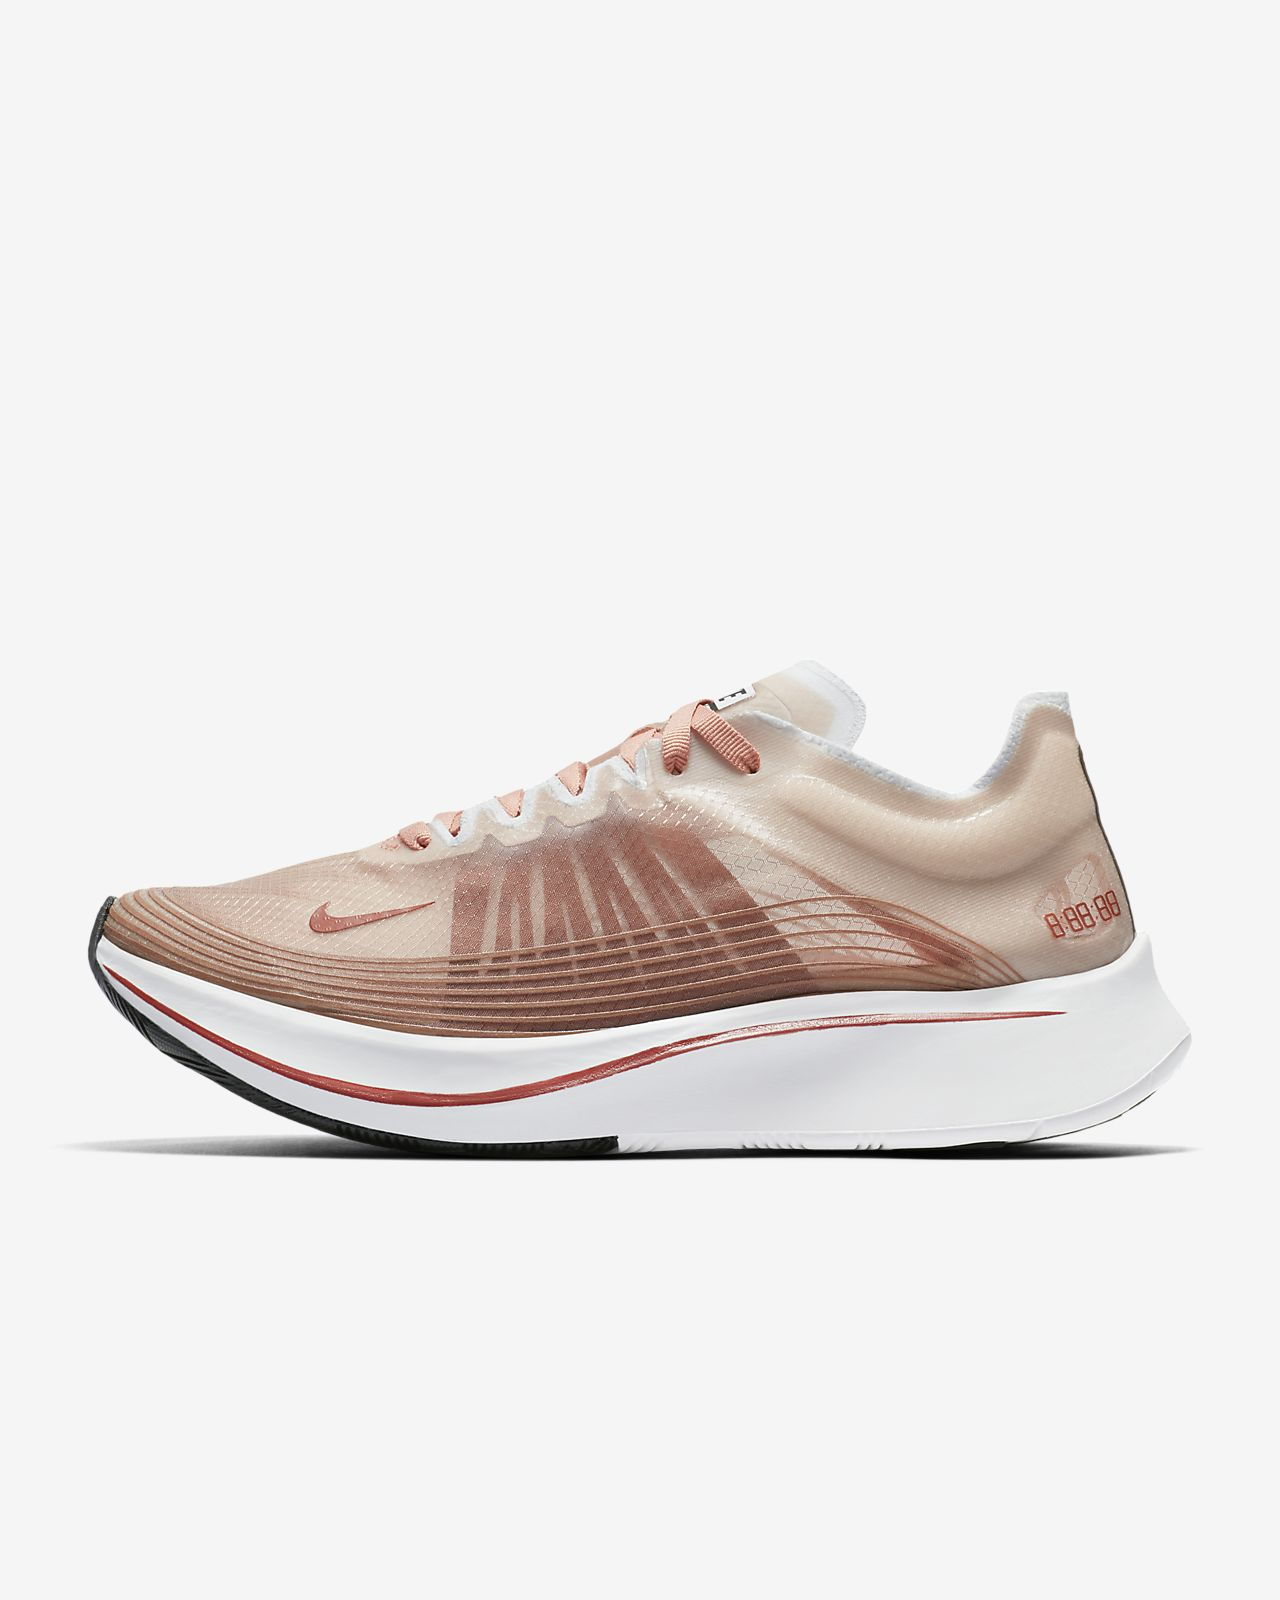 5a54a6f2ea Nike Zoom Fly SP Women s Running Shoe. Nike.com ID